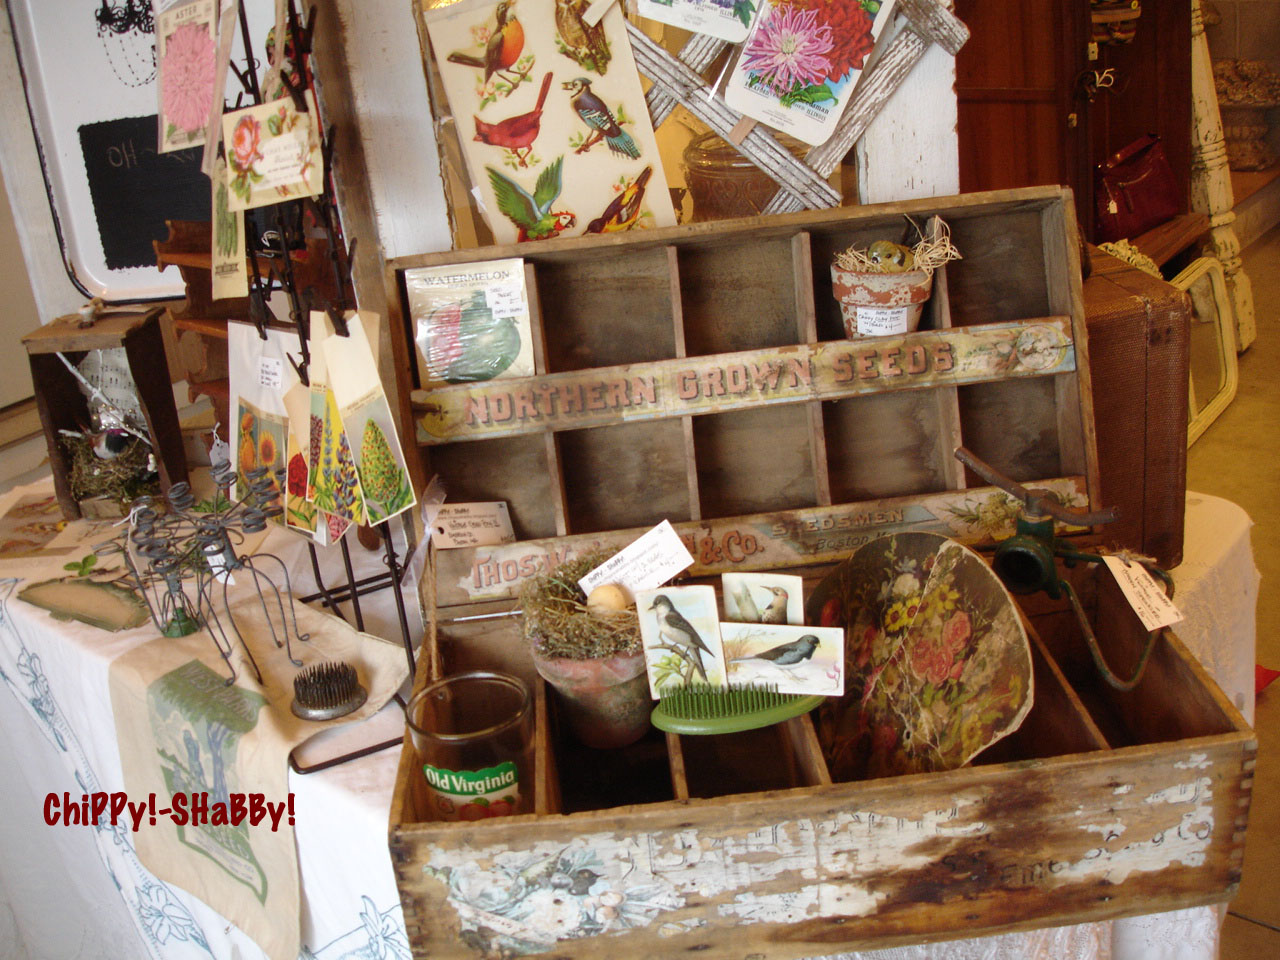 ChiPPy! - SHaBBy!: Part TWO ~ More Pics ChiPPy!-SHaBBy! SaLe!*!*!